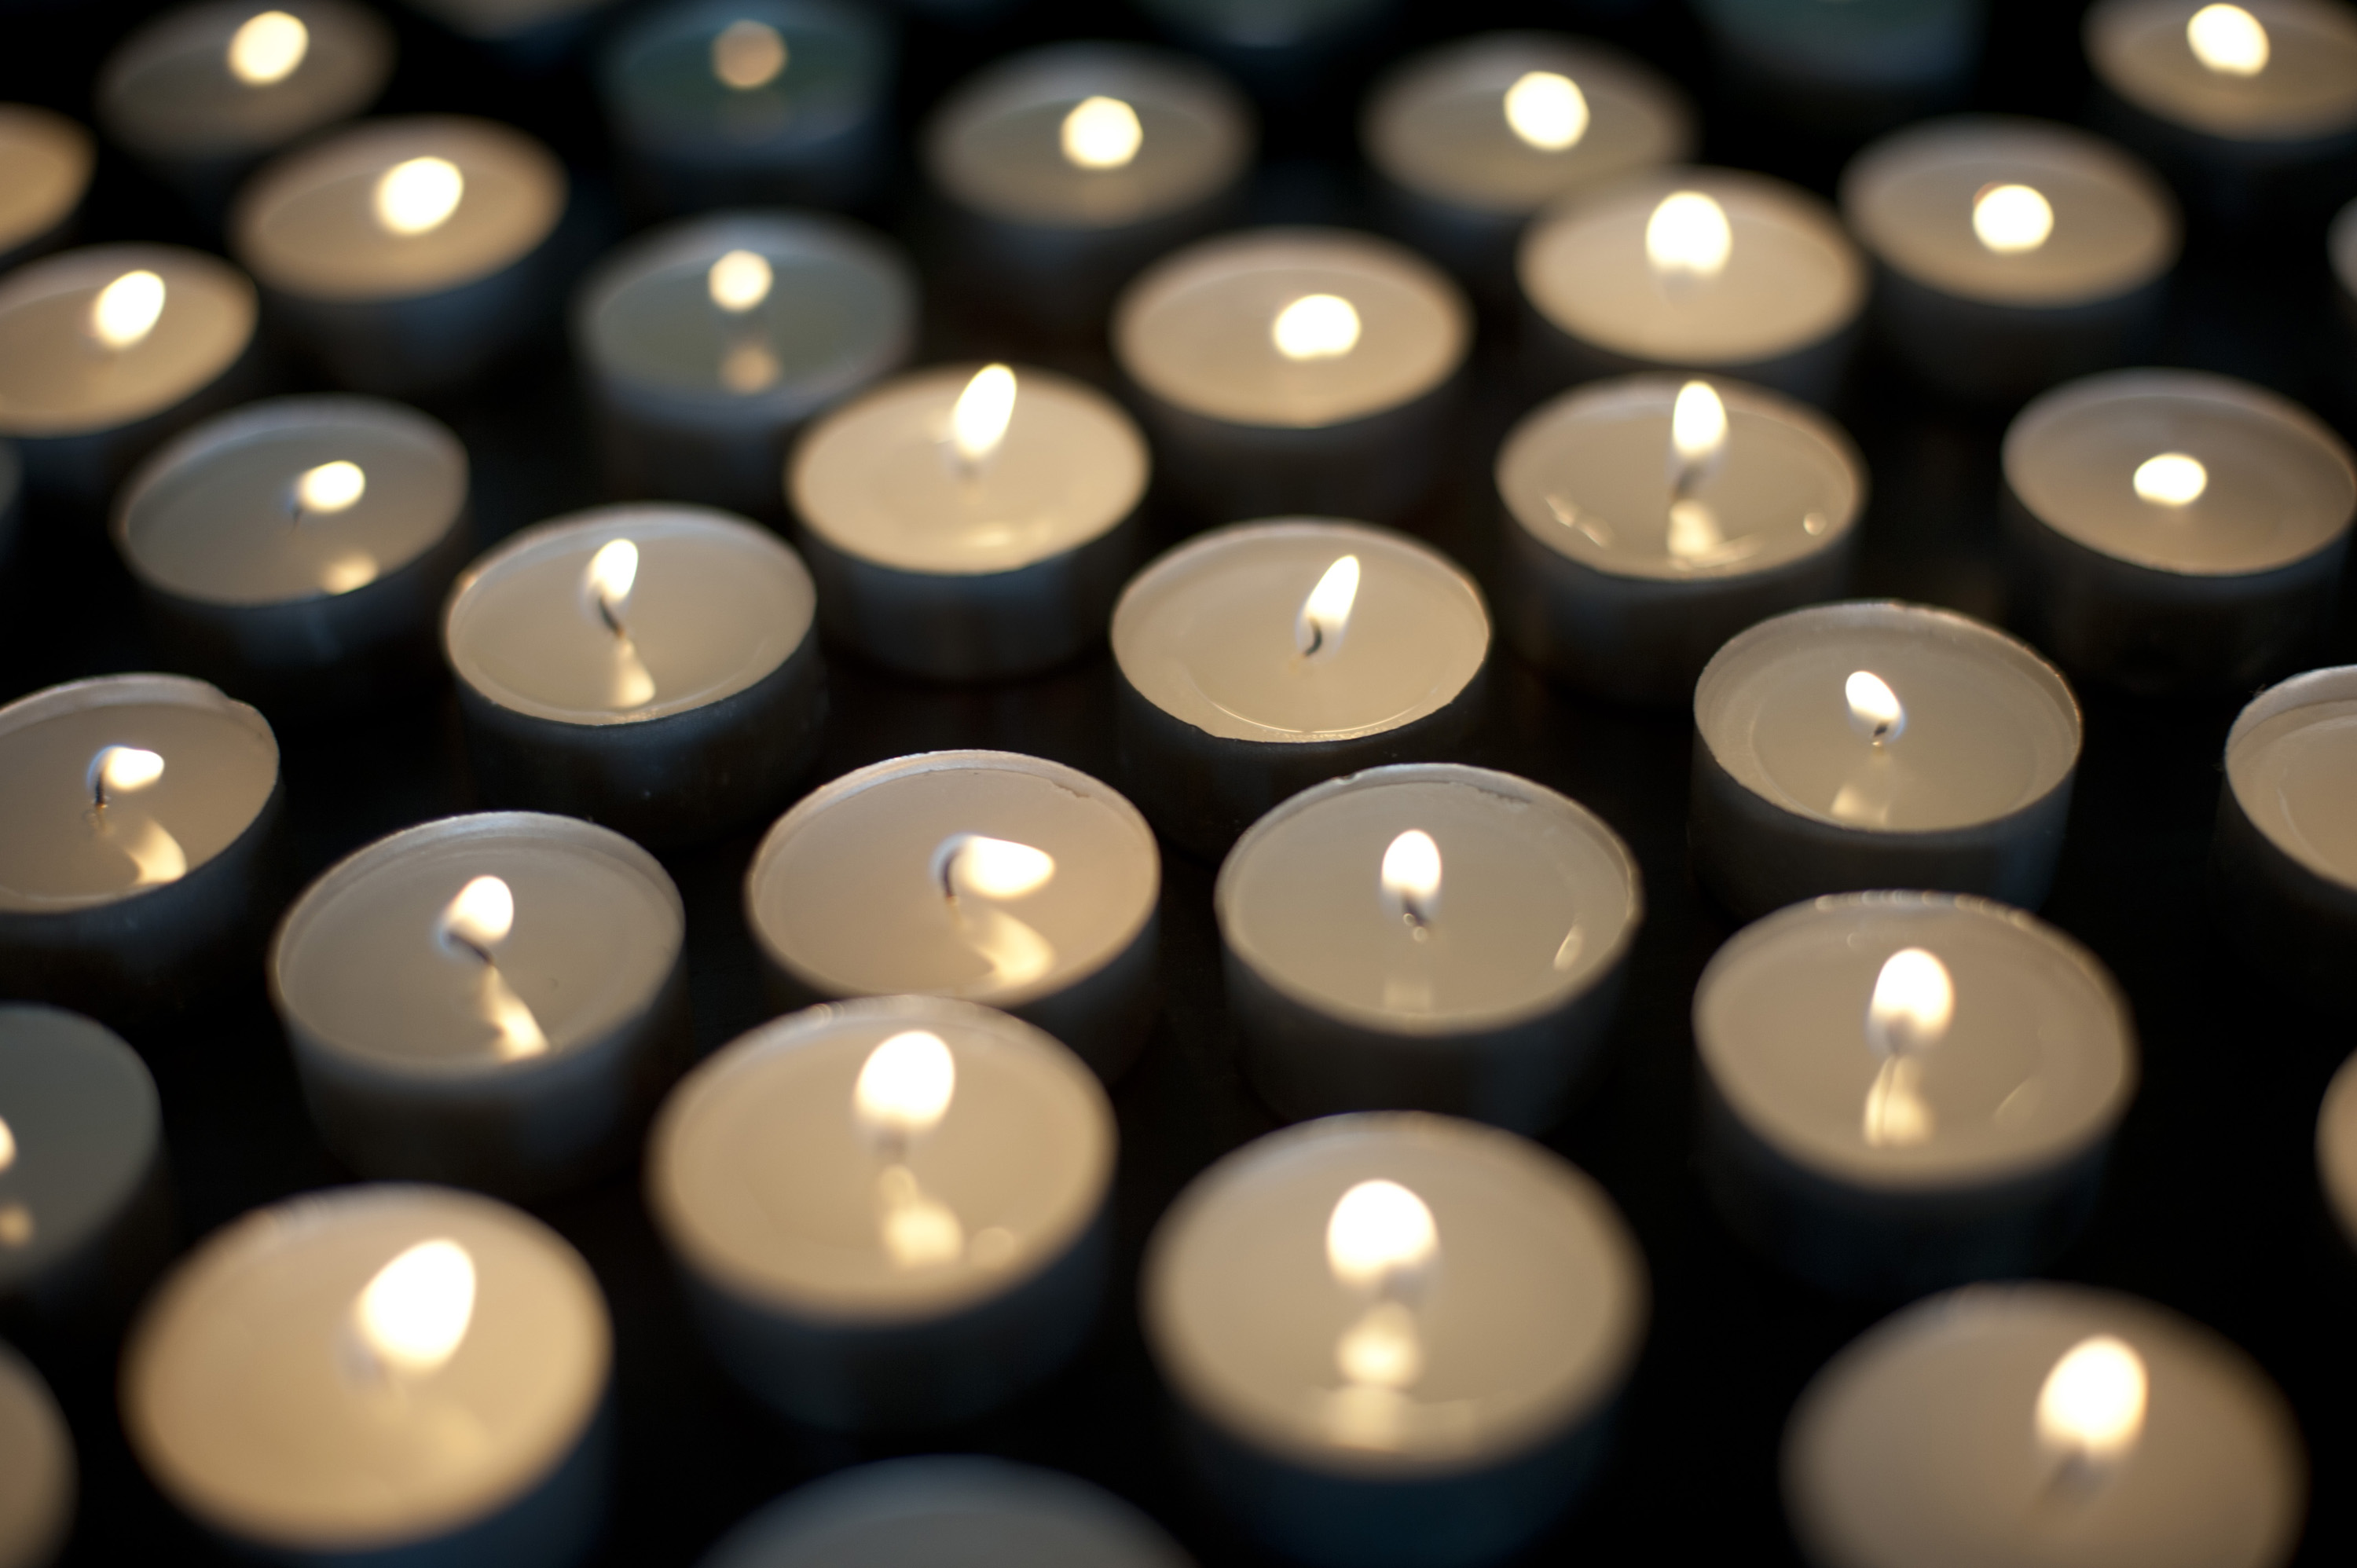 a background image of many burning christmas tealight candles